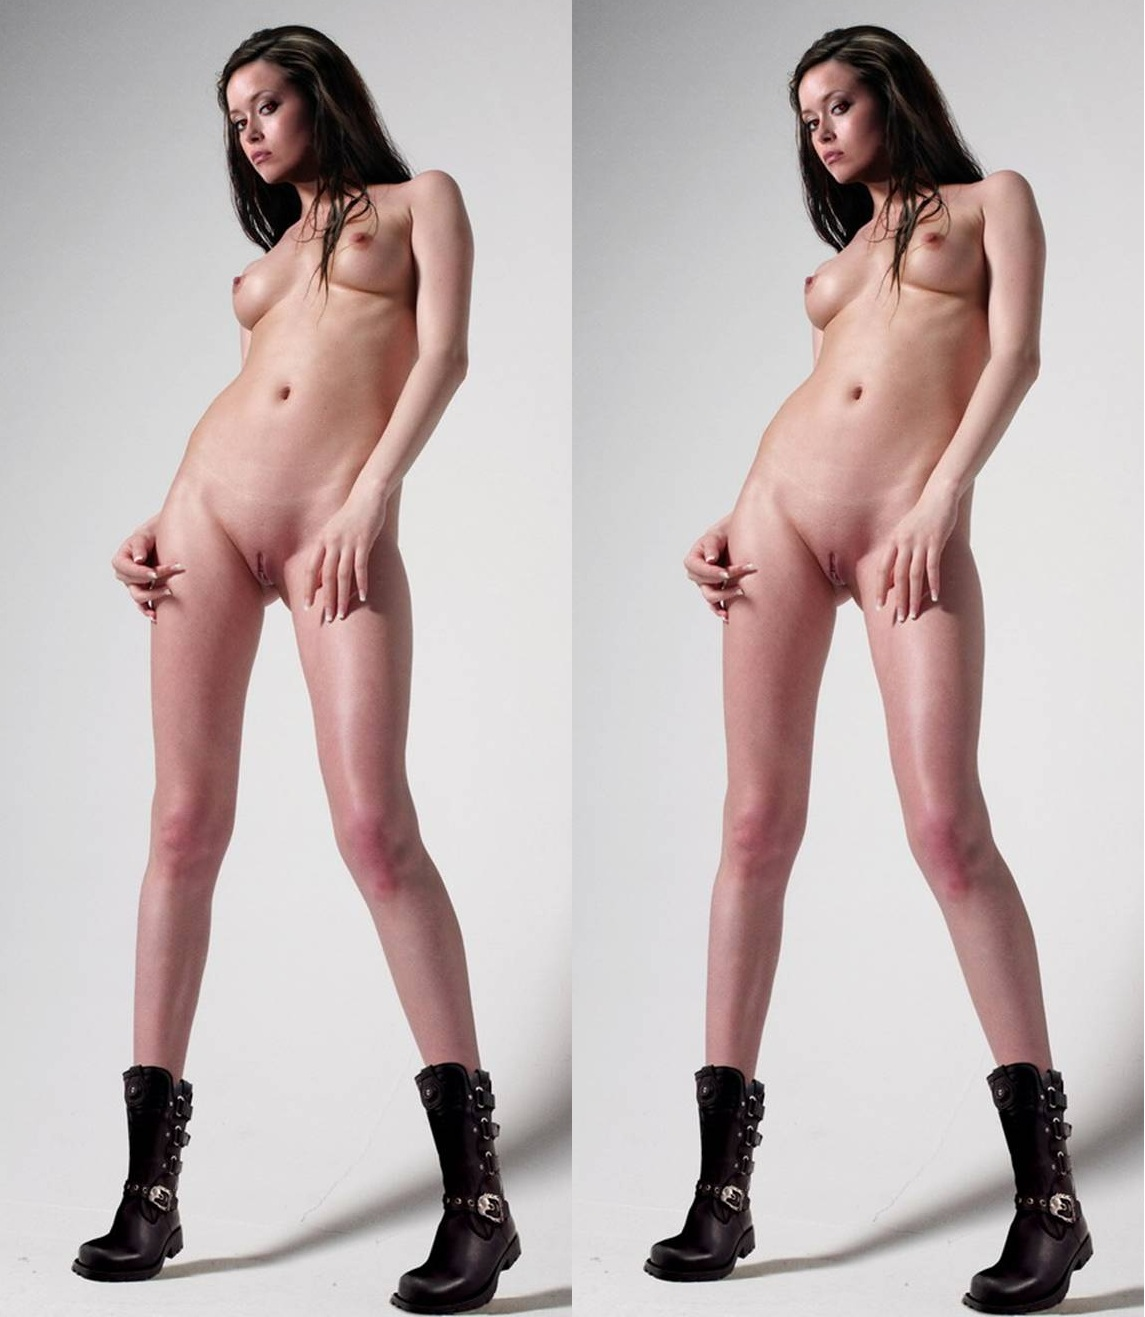 Stereoscopic girl nude 6